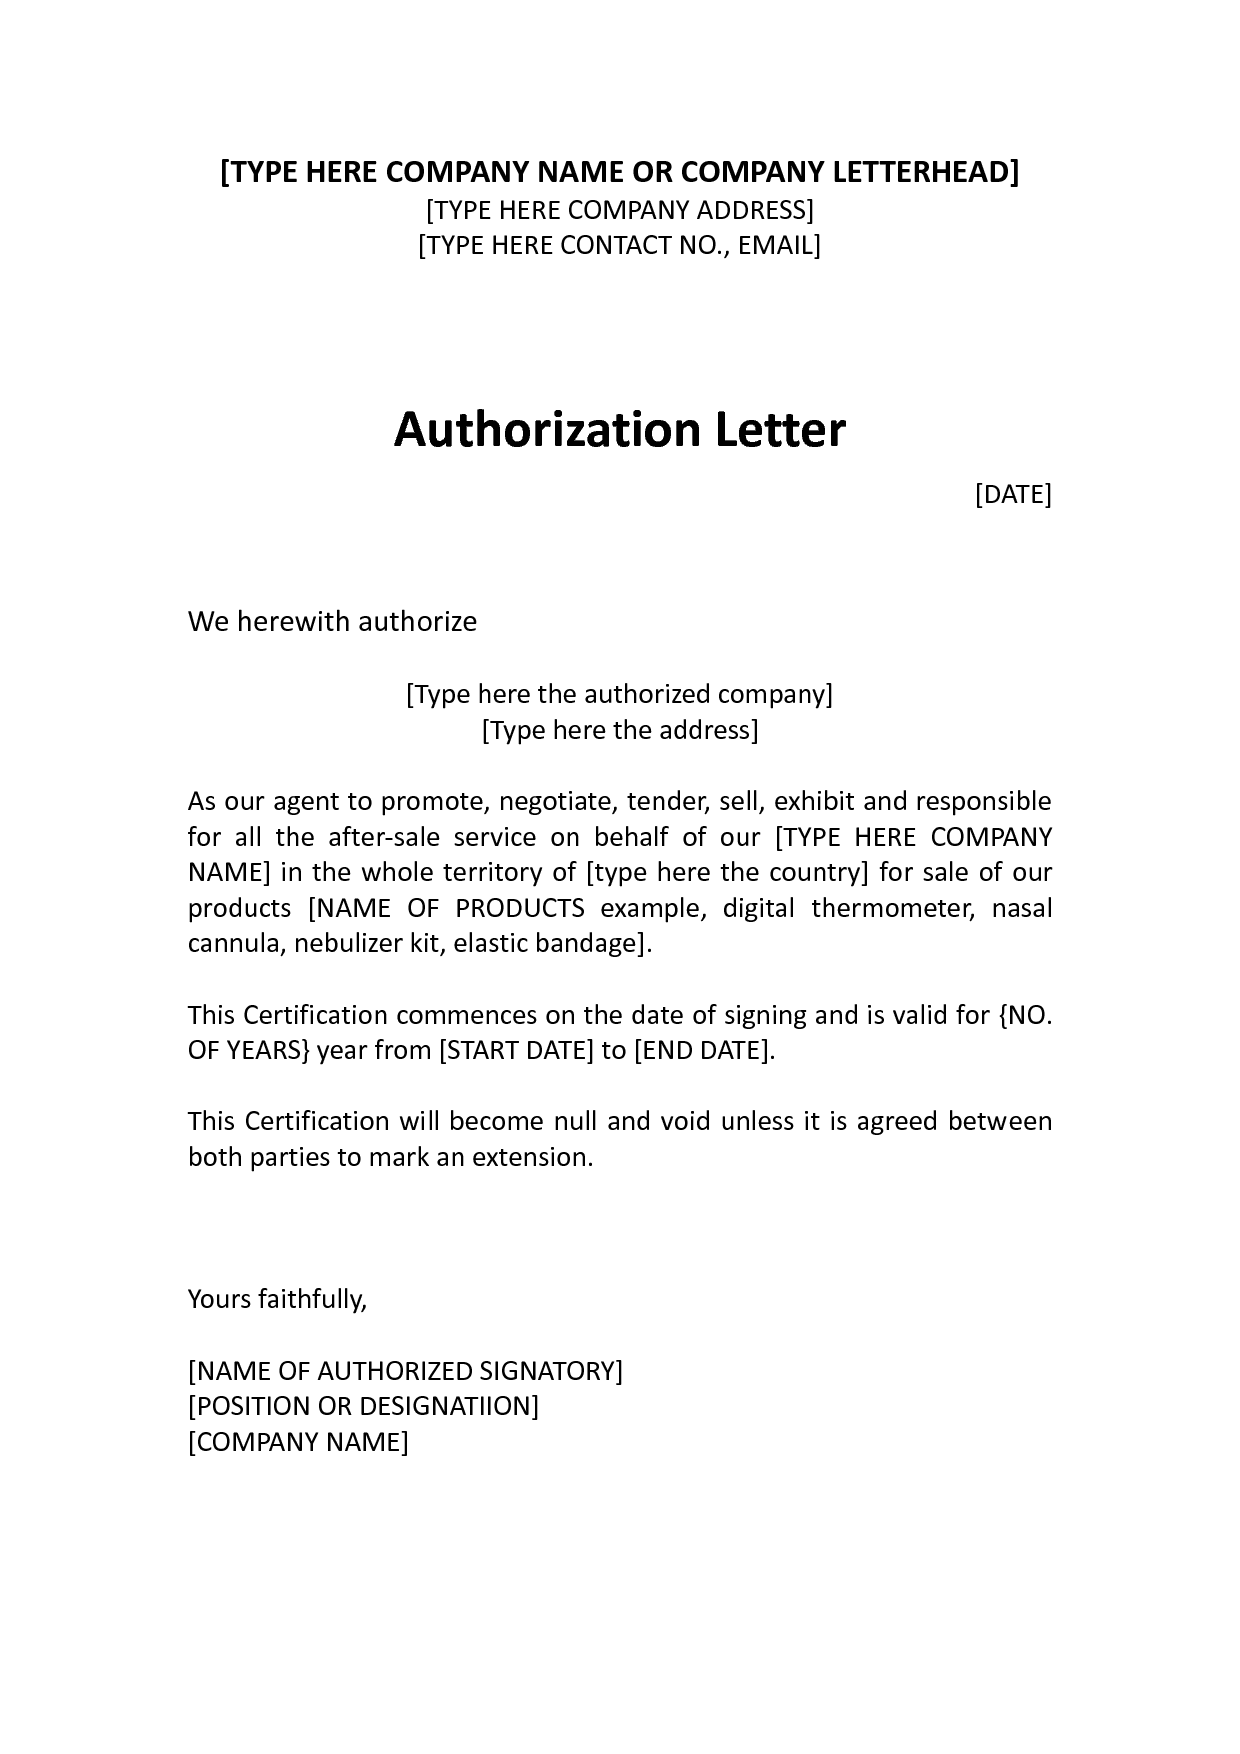 Distributor Letter Sample Dealer Authorization Featured Suppliers